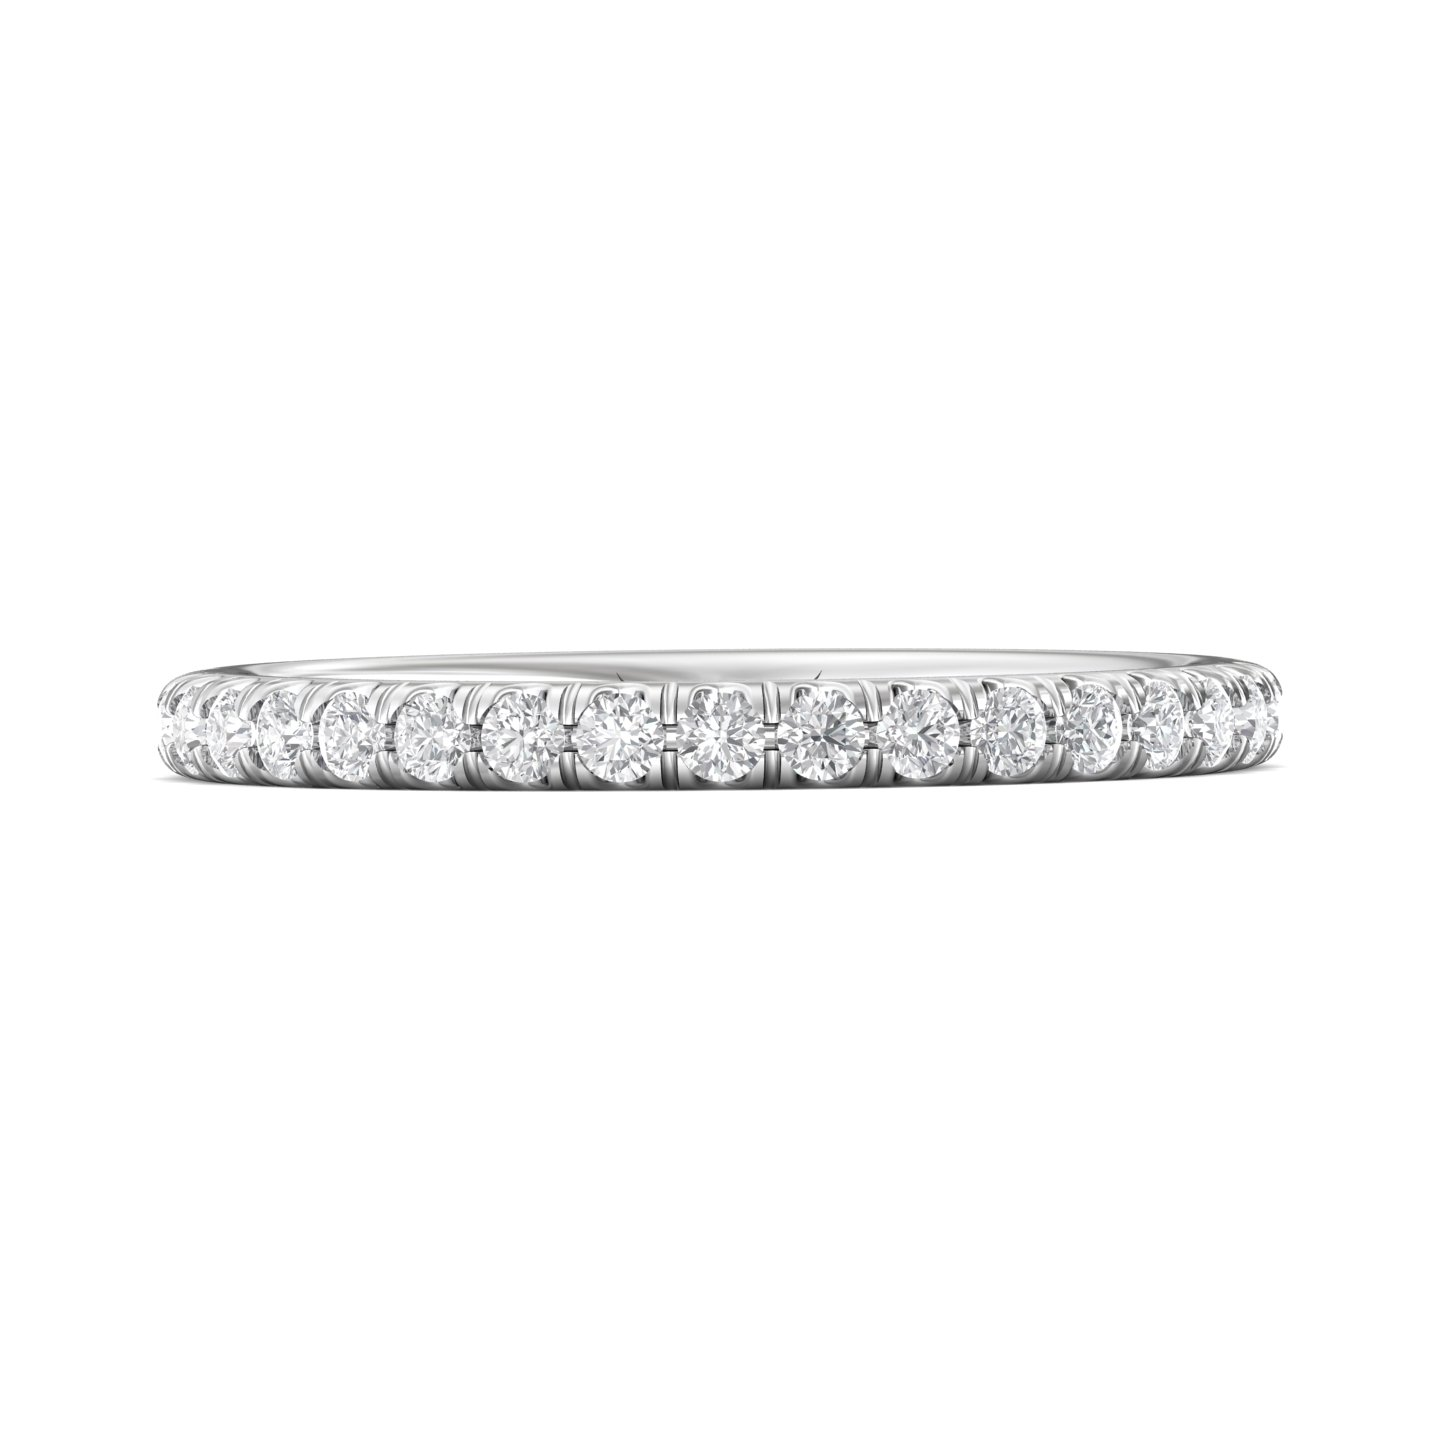 Rings - 14K White Gold FlyerFit Eternity Wedding Band